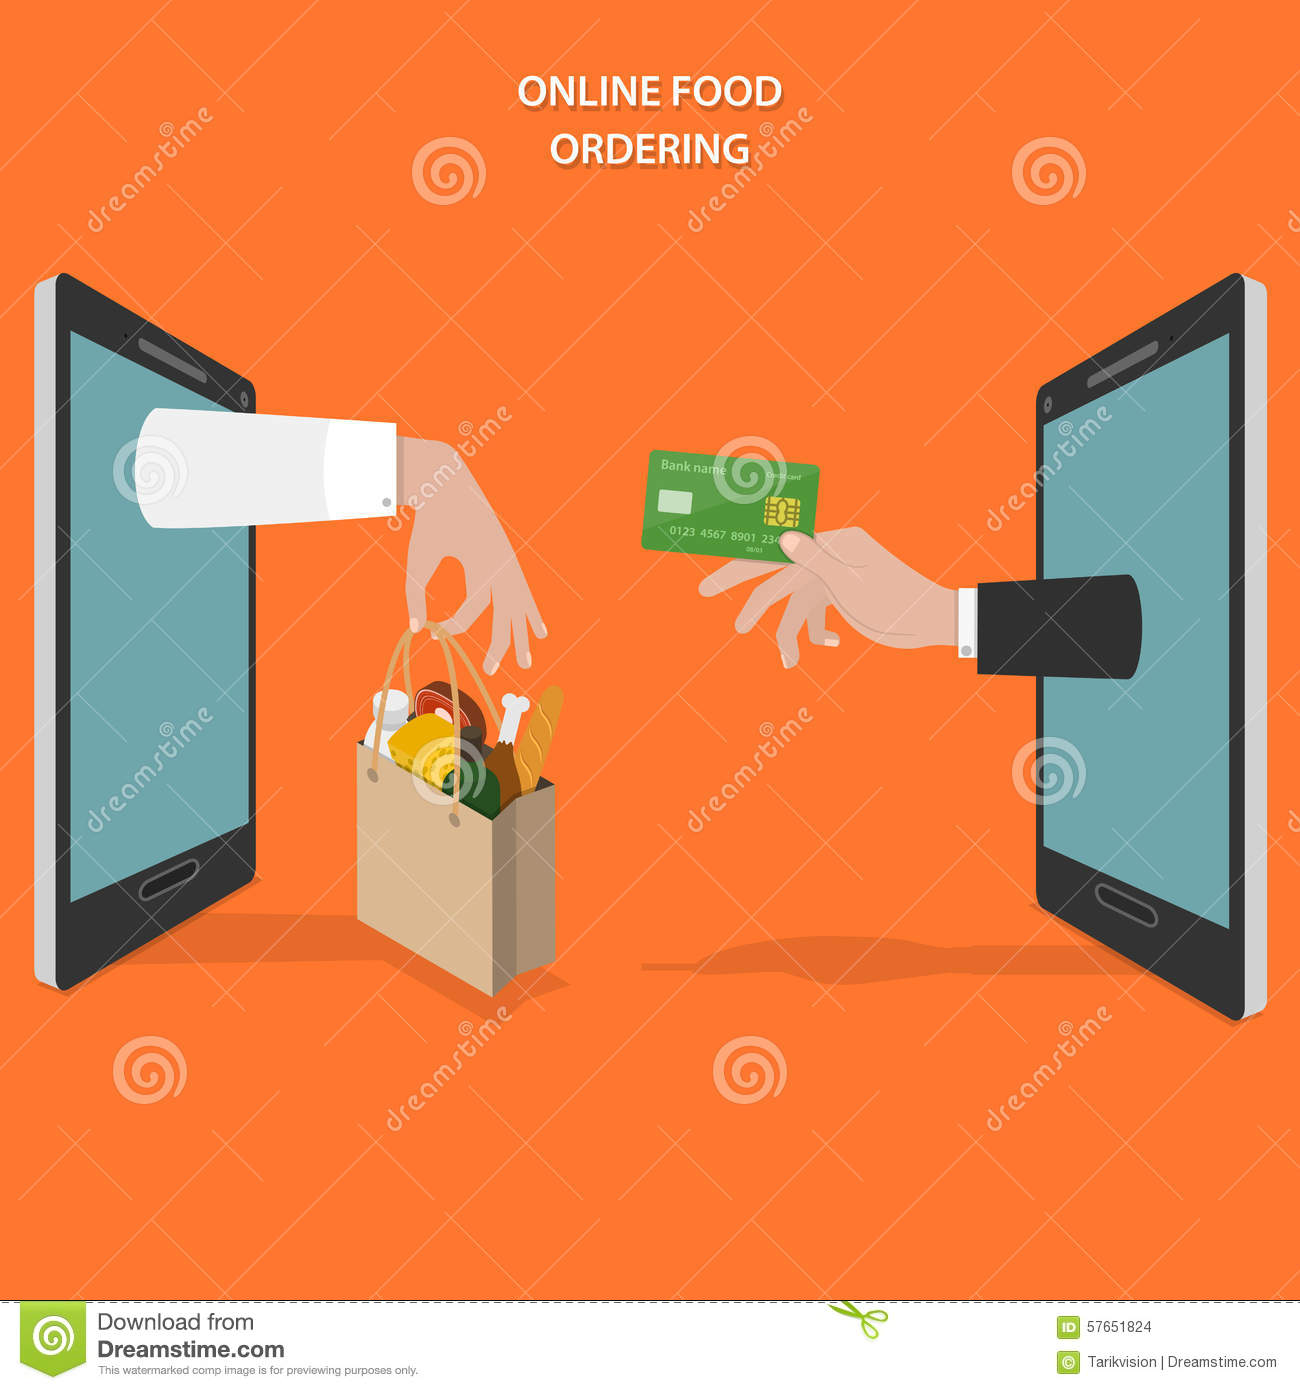 online food ordering thesis Reservation online ordering system thesis pdf system thesis get-essaycom articles on mental disorders offers a wide range of writing services online uploaded by.